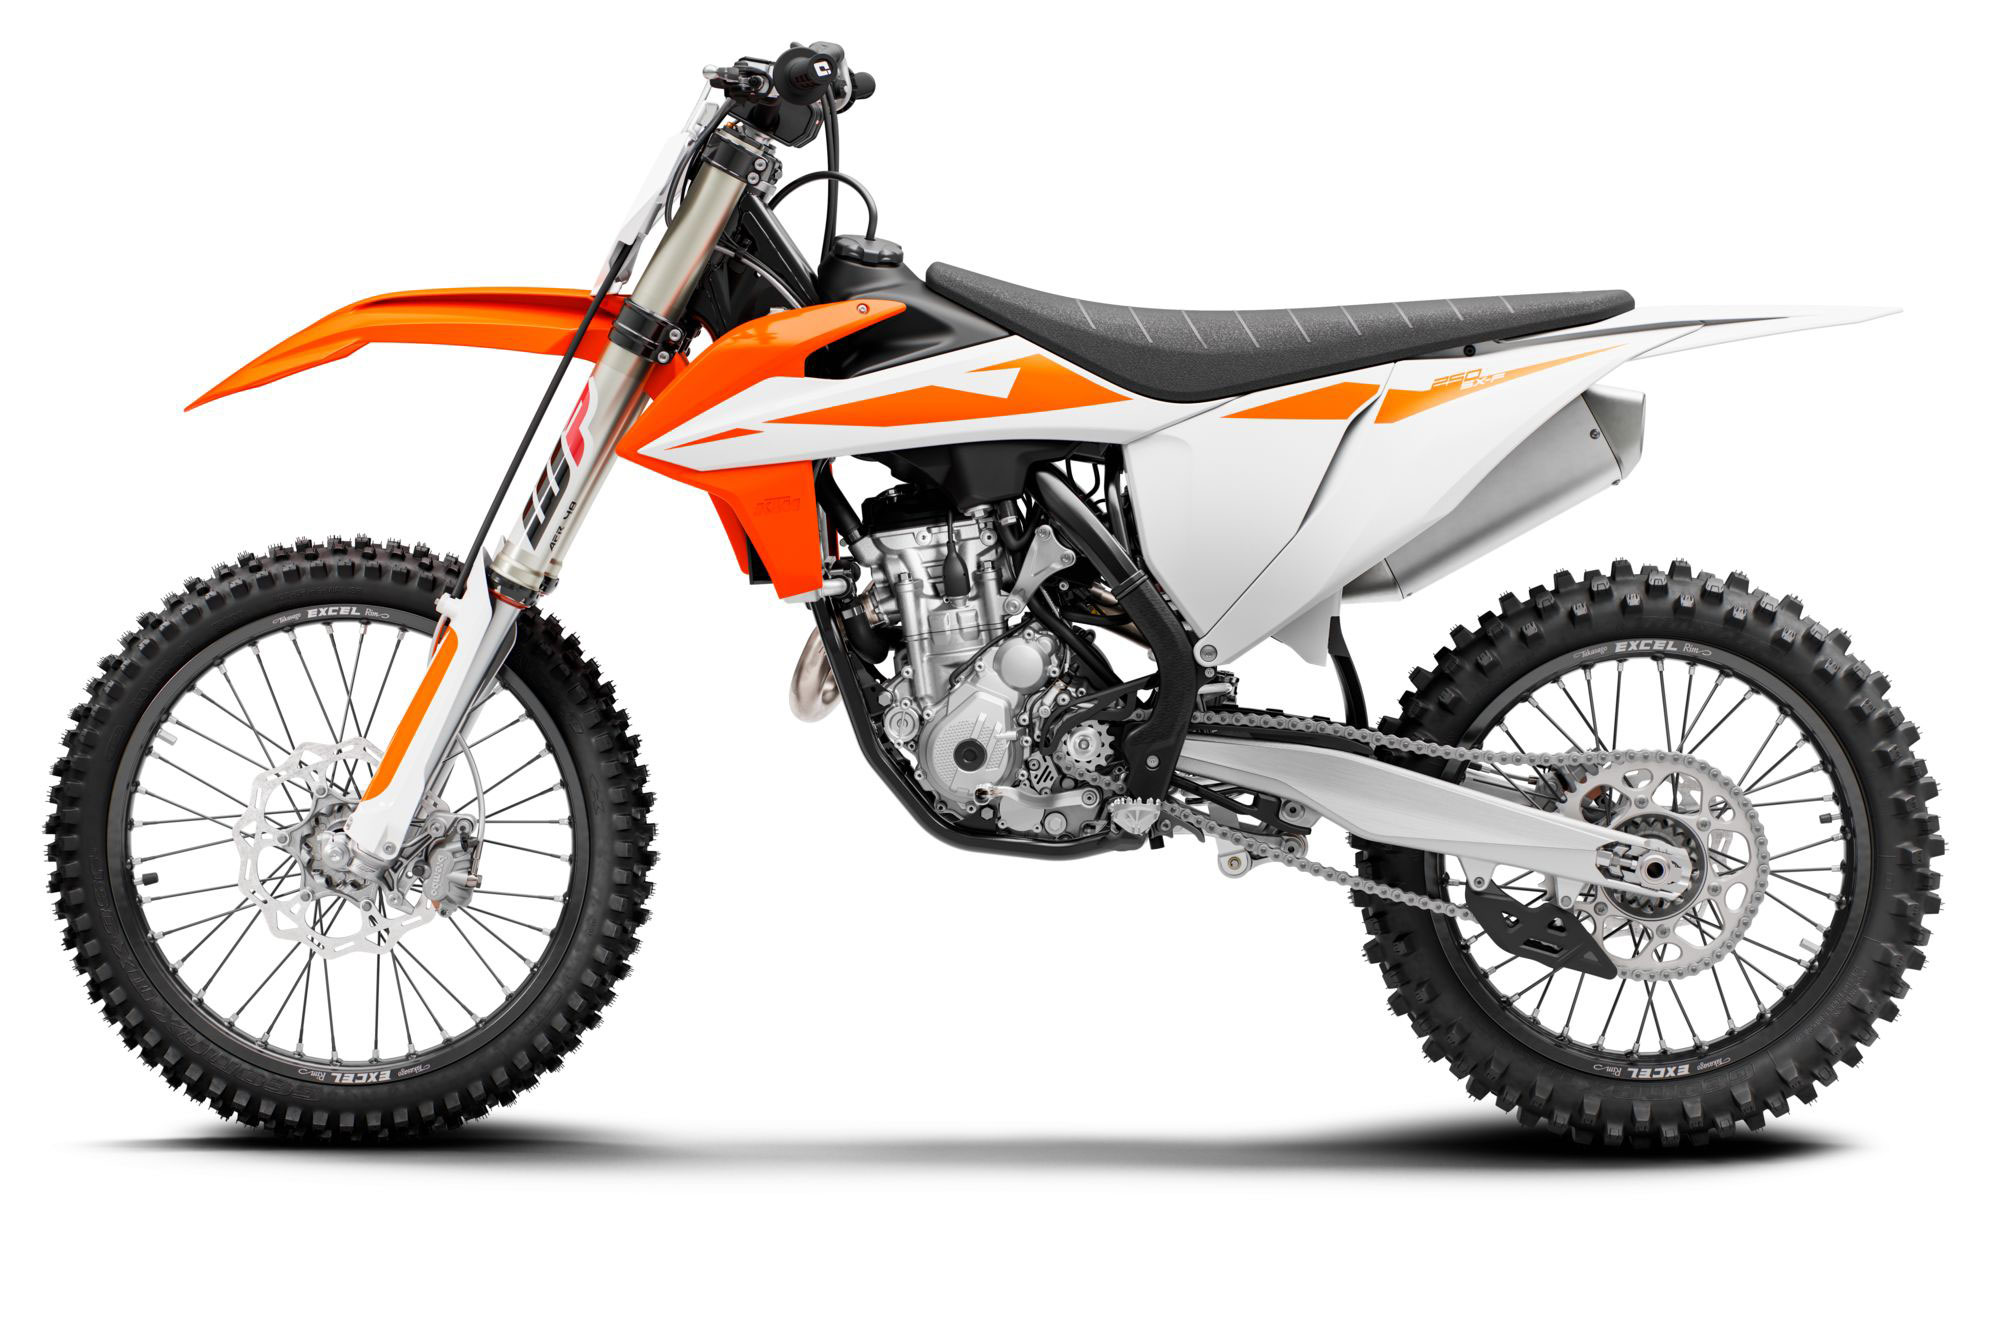 hight resolution of ktm 250 sxf wiring diagram wiring diagram home ktm 250 sxf wiring diagram